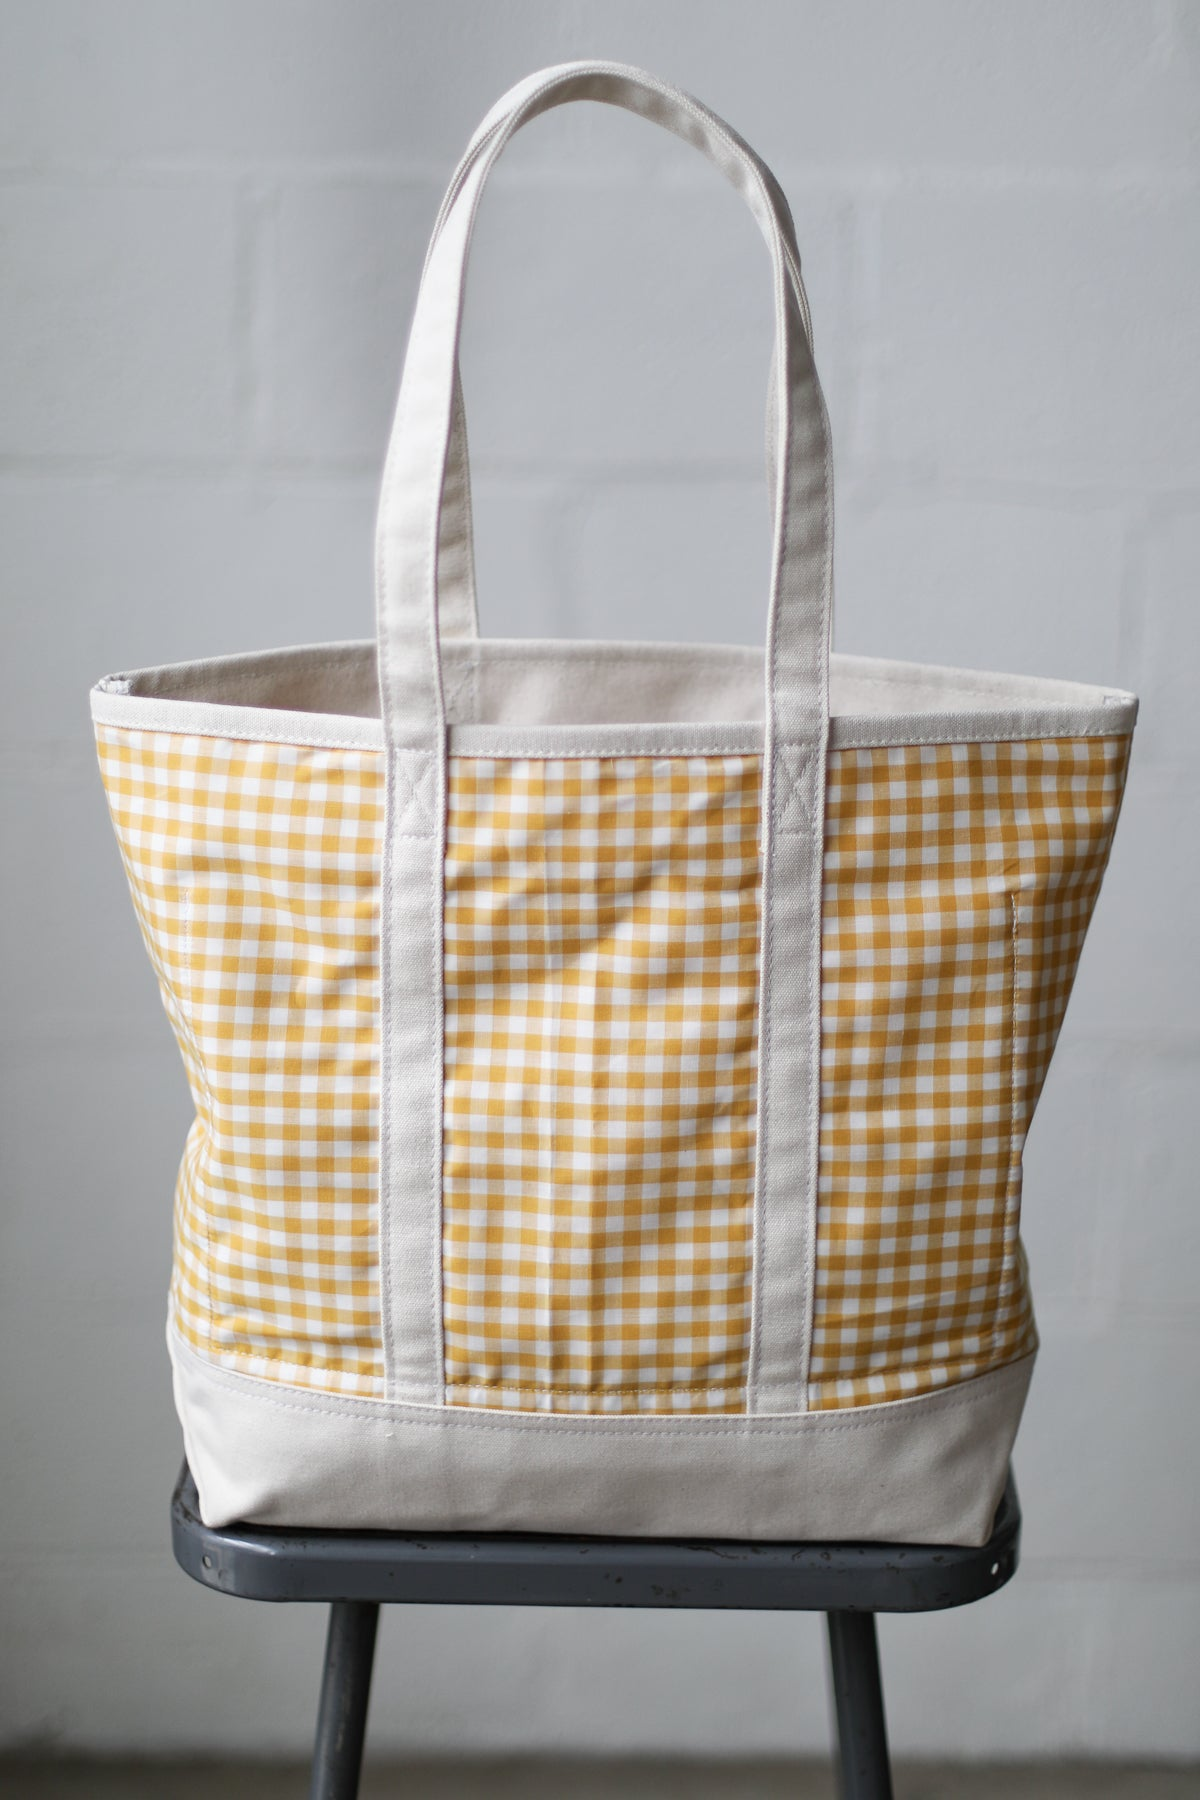 Reclaimed Market Tote No. 040